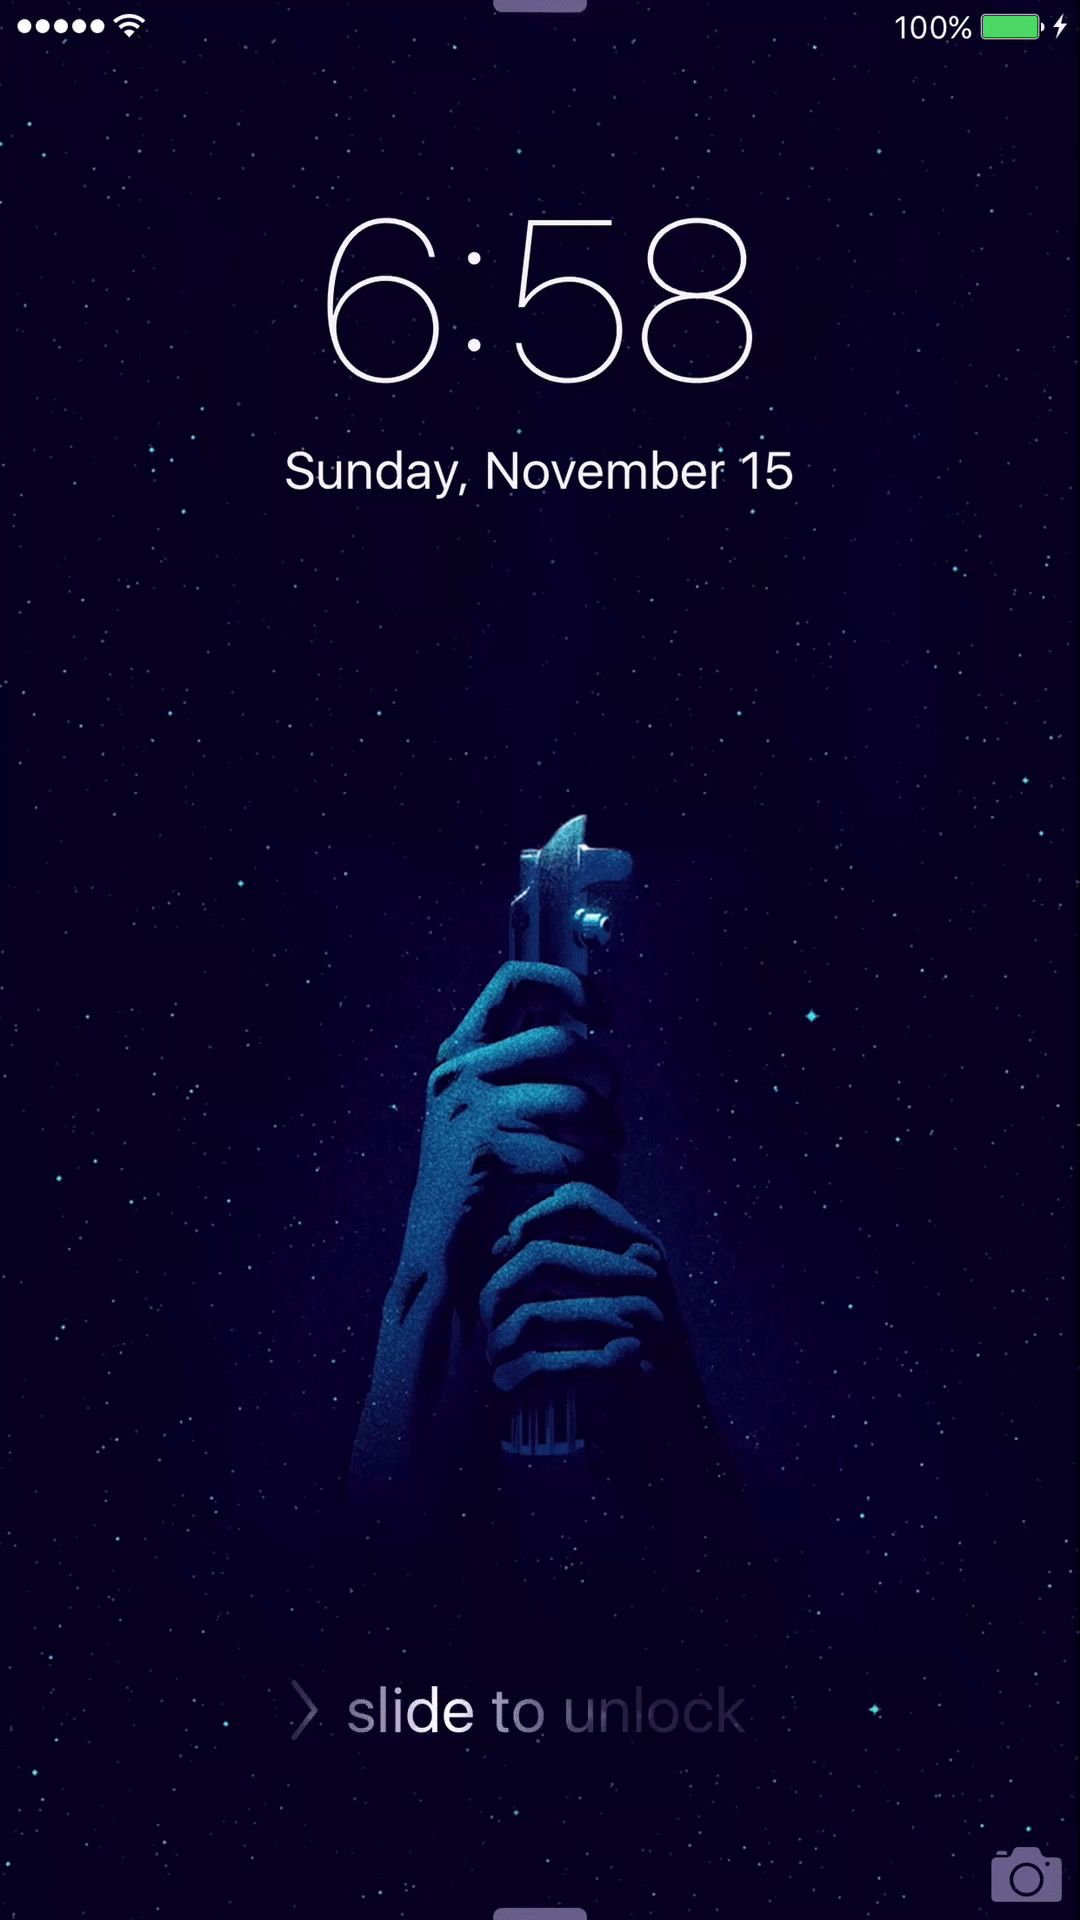 68 Android Animated Wallpapers On Wallpaperplay Star Wars Wallpaper Iphone Star Wars Wallpaper Iphone Wallpaper Stars